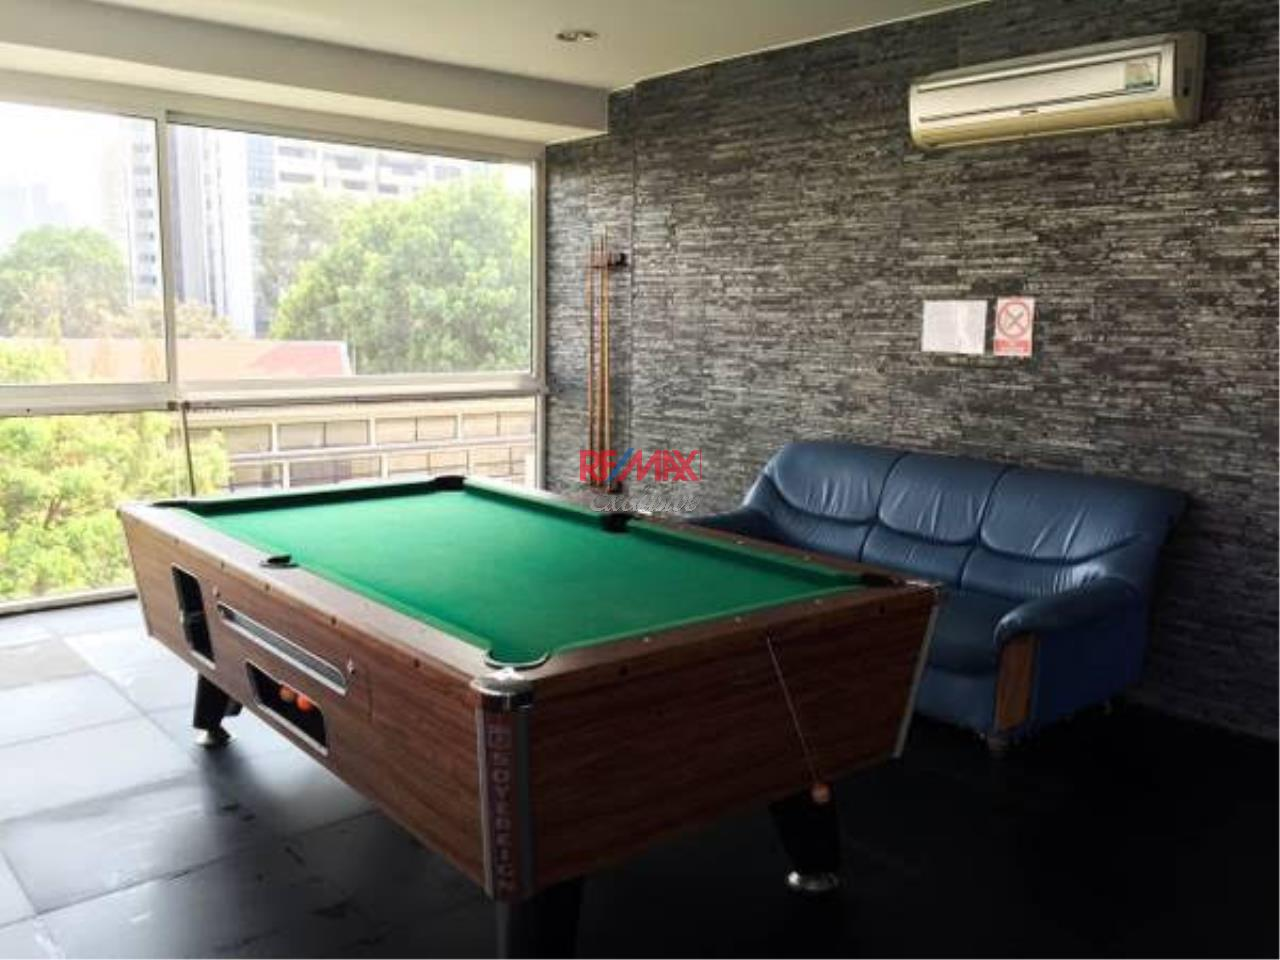 RE/MAX Exclusive Agency's Baan Saran 1 Bedroom Big Size for sale Good Price 4200000 THB 10